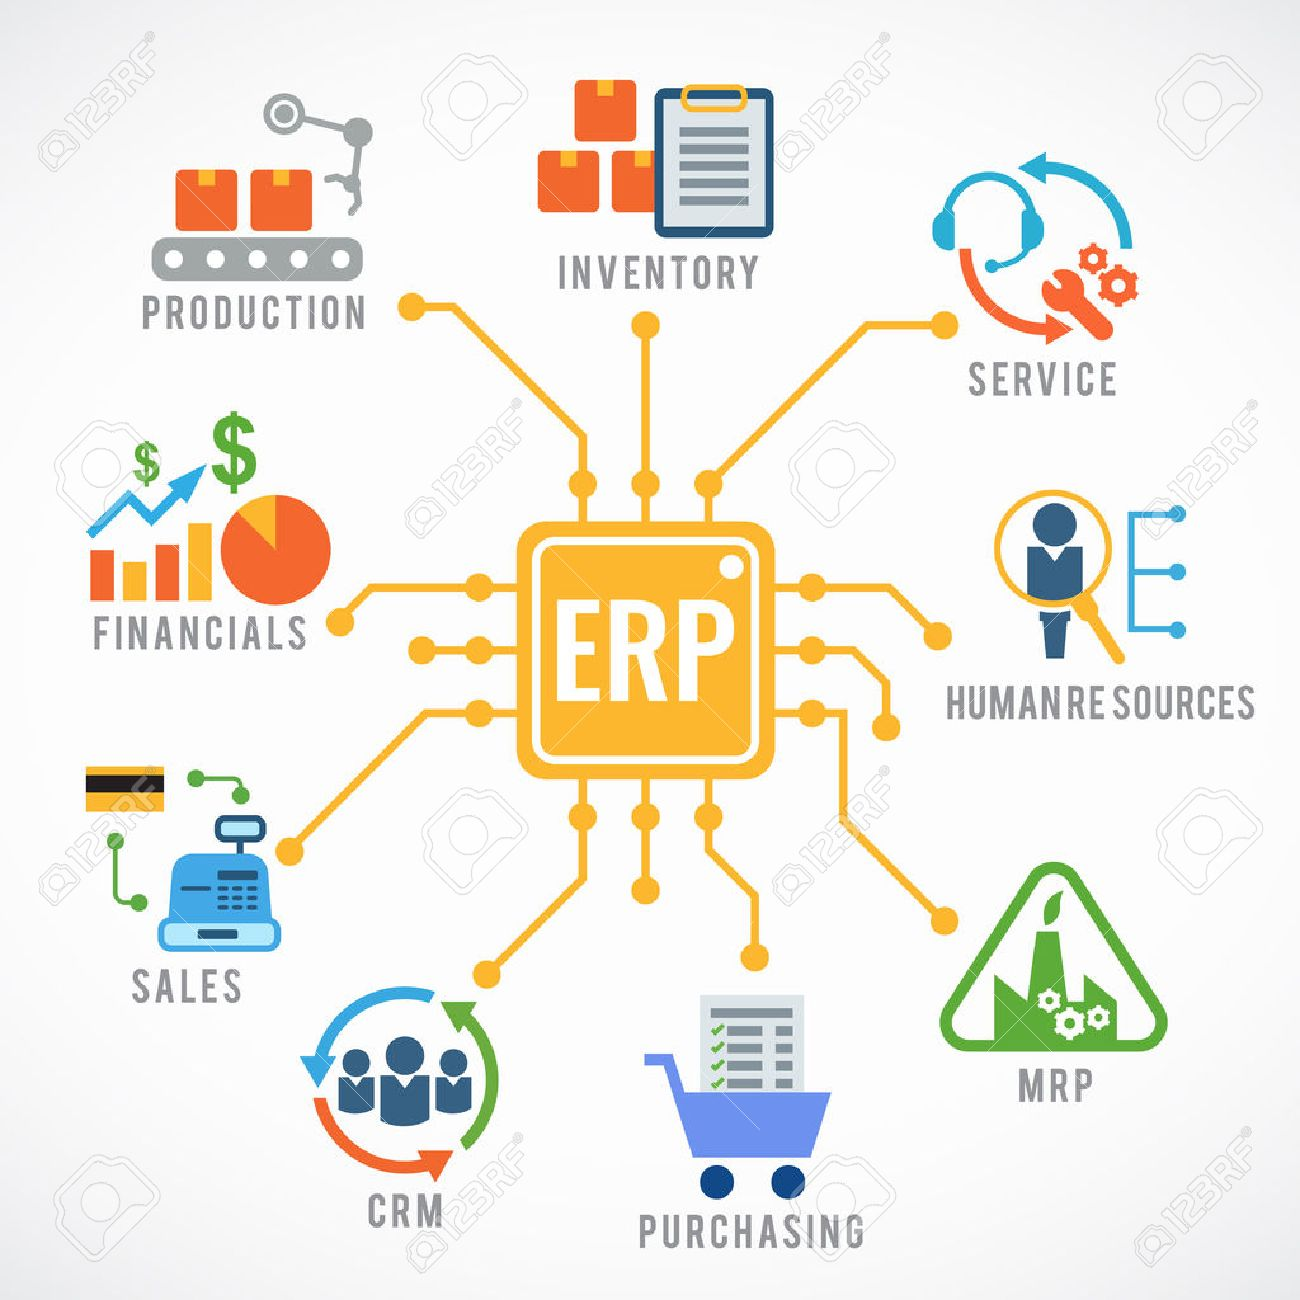 Enterprise resource planning erp module construction flow icon enterprise resource planning erp module construction flow icon art vector design stock vector ccuart Image collections